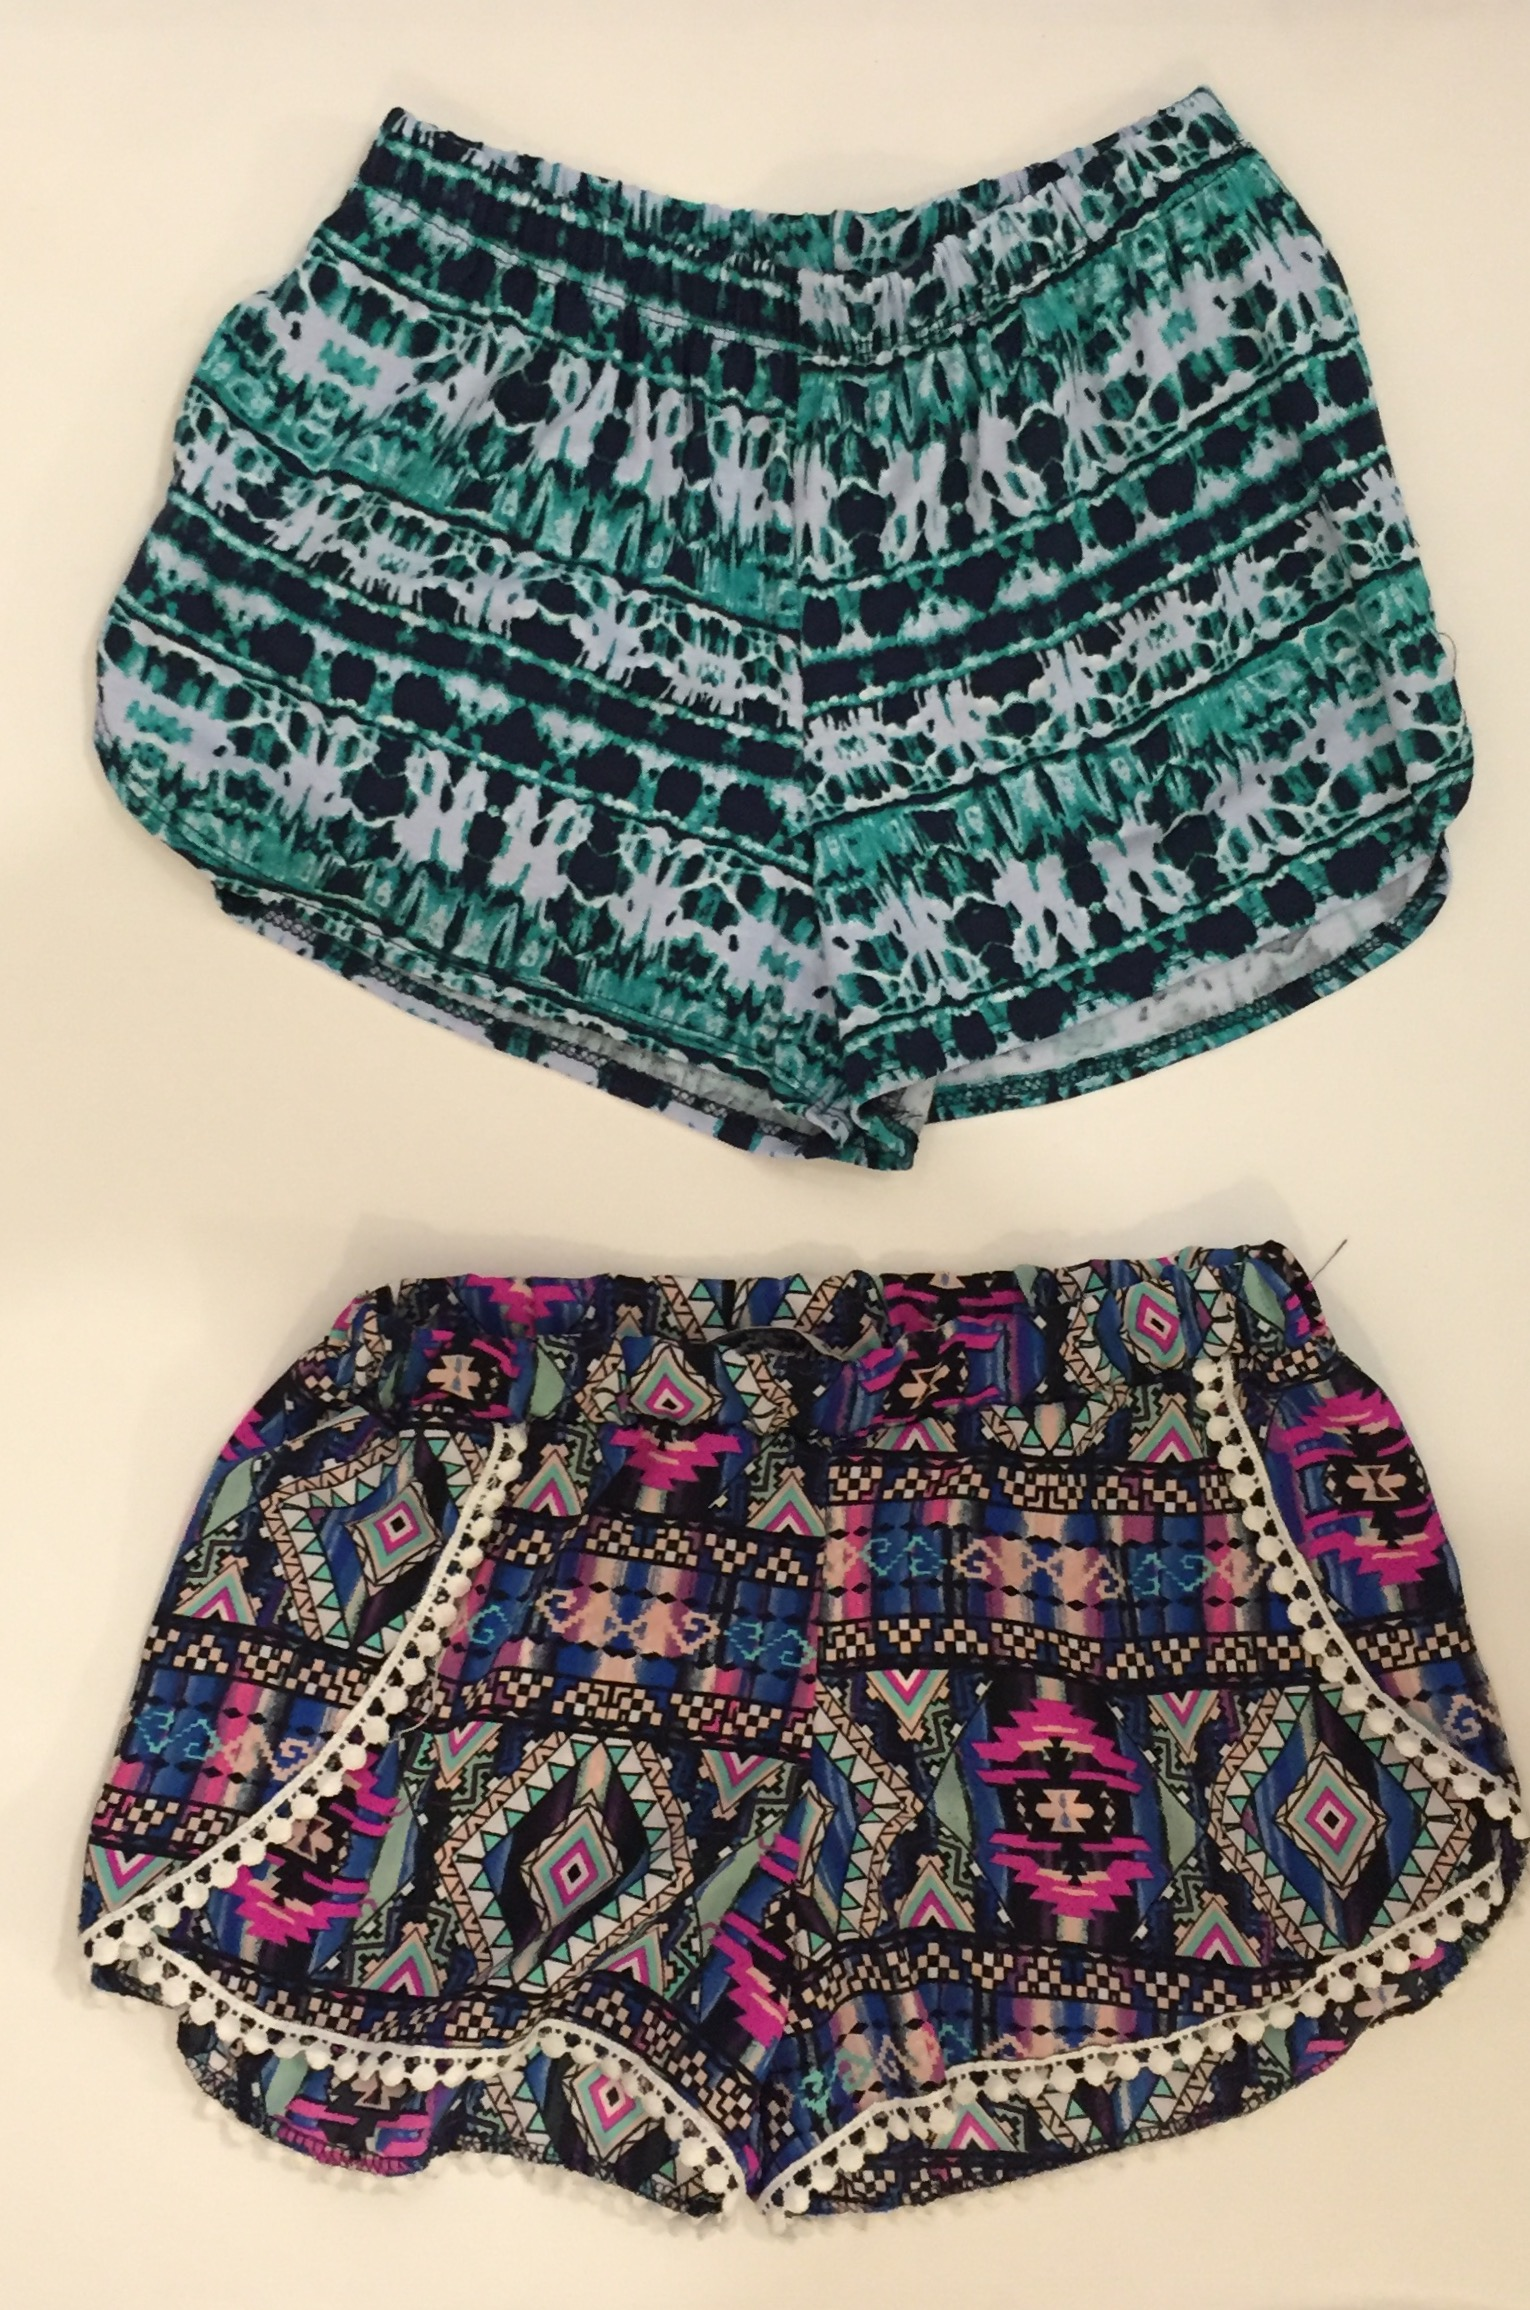 Printed shorts are perfect for parties or great with a tank on hot summer days